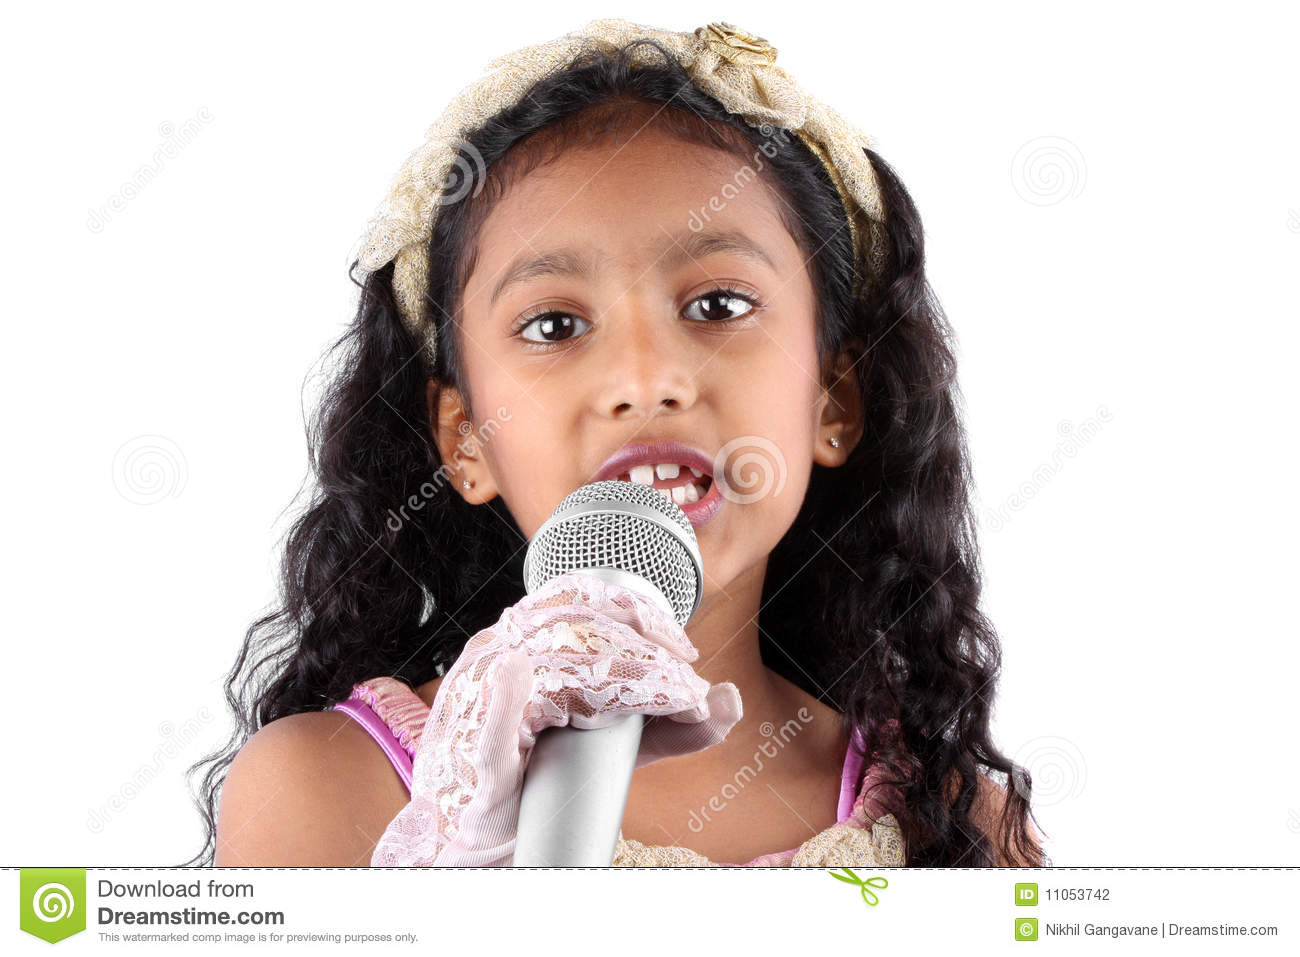 ... Indian girl making a speech, holding a mic on white studio background